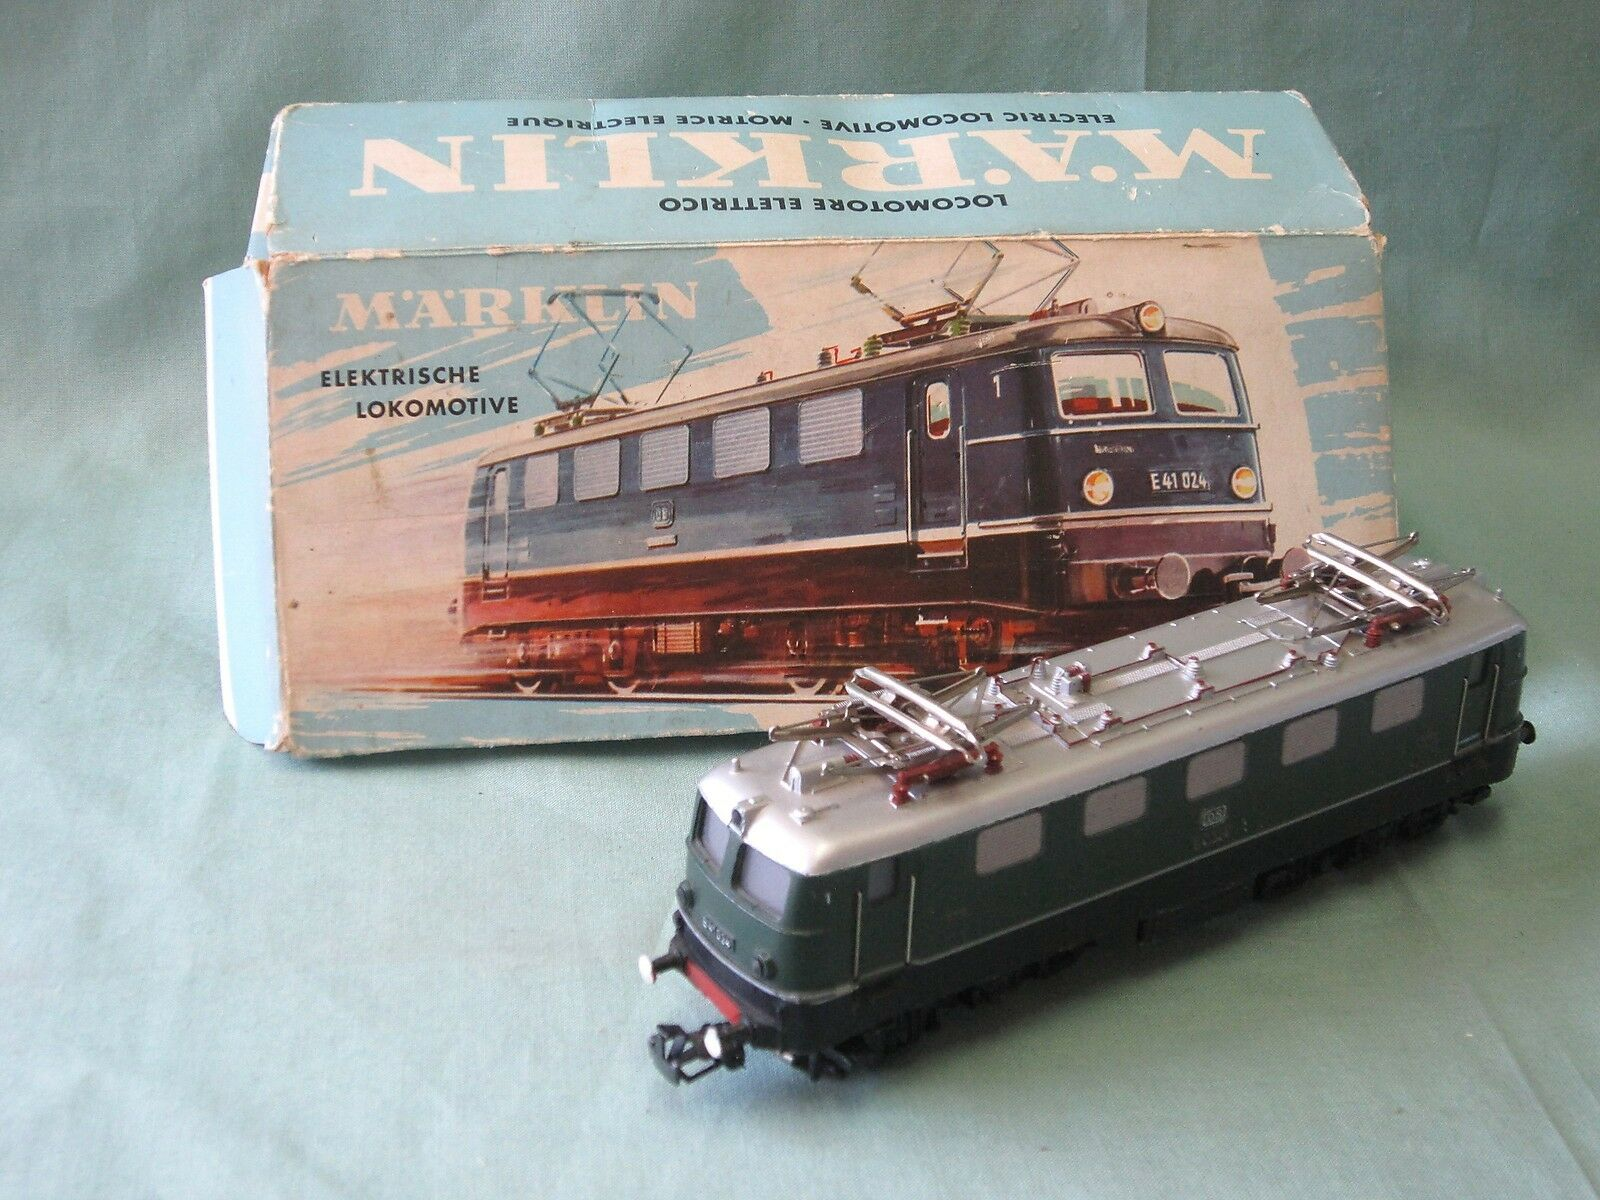 Dv5787 marklin elektrische lokomotive locomotive electrique e41024 ref 3037 oh